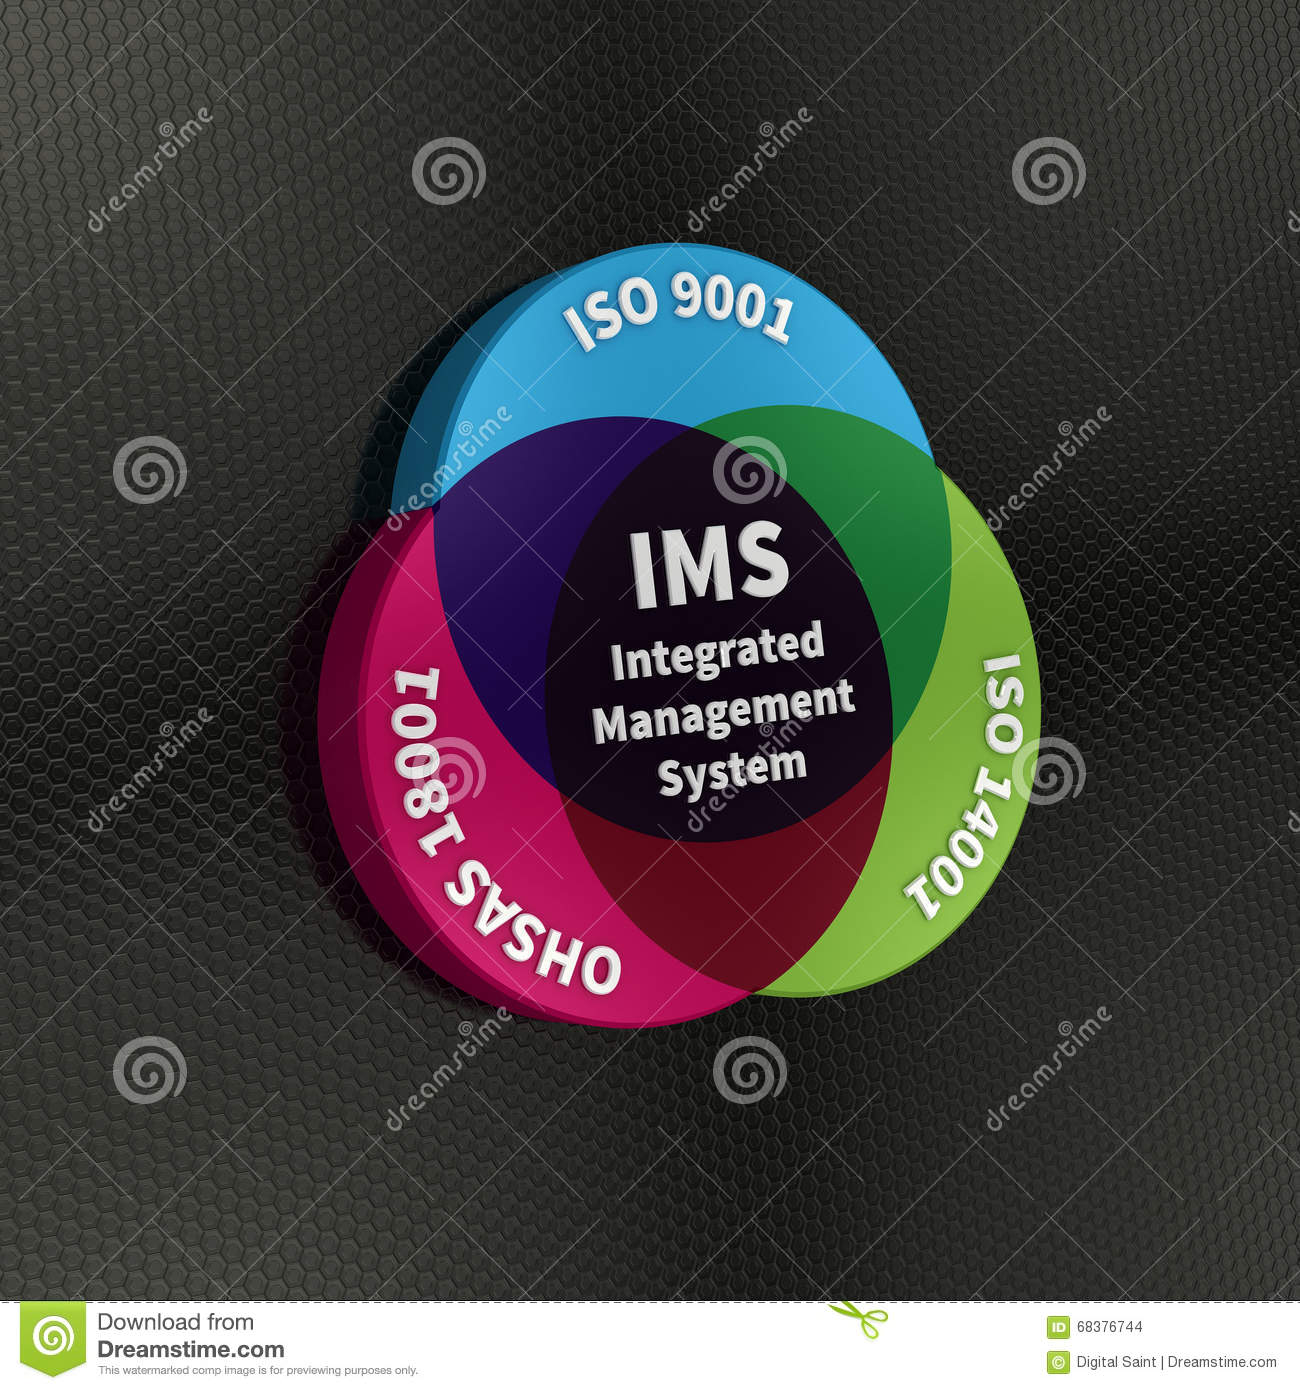 integrated management systems Integrated management systems 1 management systems integration: big q or little q dennis arter, fasq october 2013 2 eras of management control era (product) 1925-1975 define characteristics and inspect to those characteristics (form, fit, function) assurance era (process) 1975-2000 define processes to achieve results and make sure those processes are.